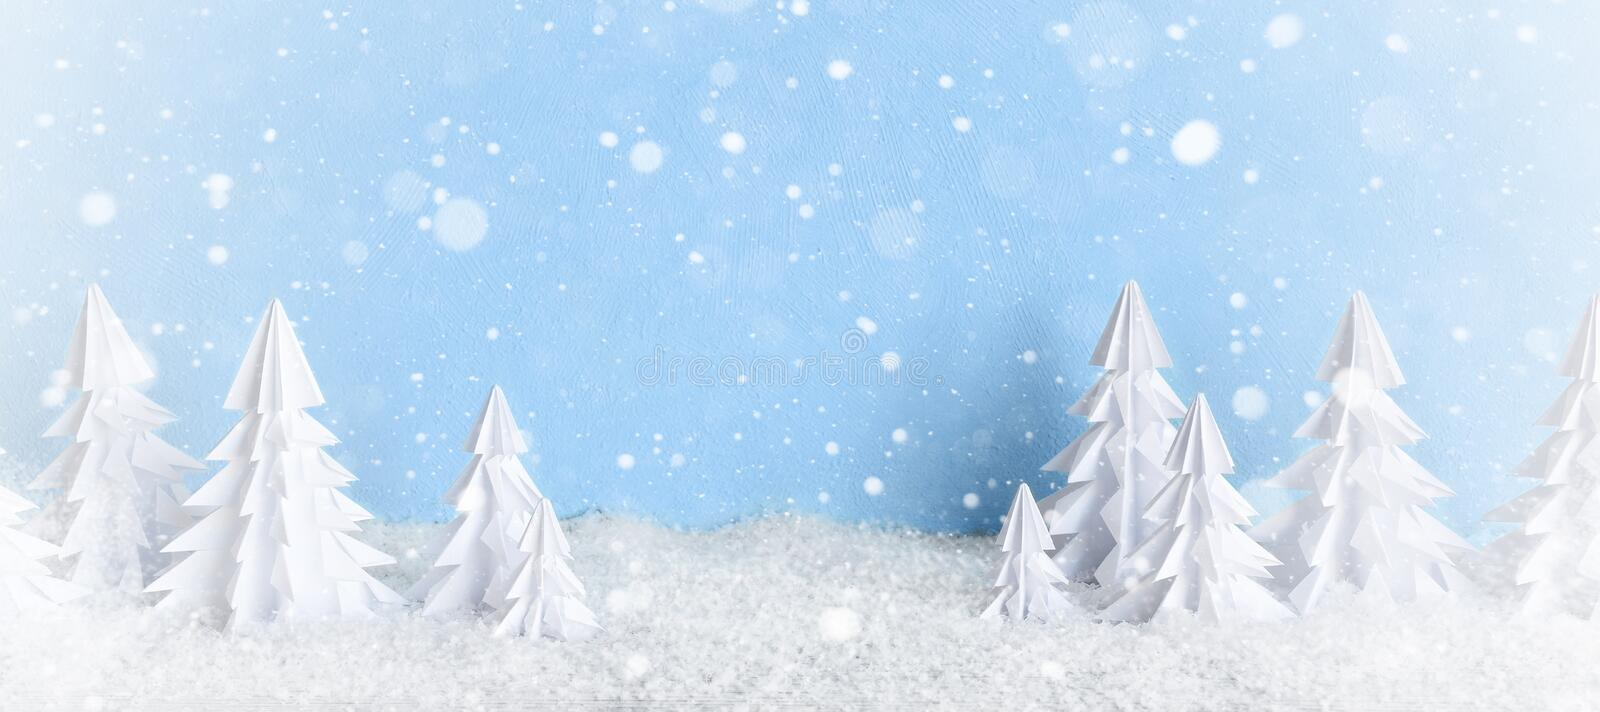 Winter Christmas minimalist background frosty baner with white paper trees on blue . royalty free stock photography